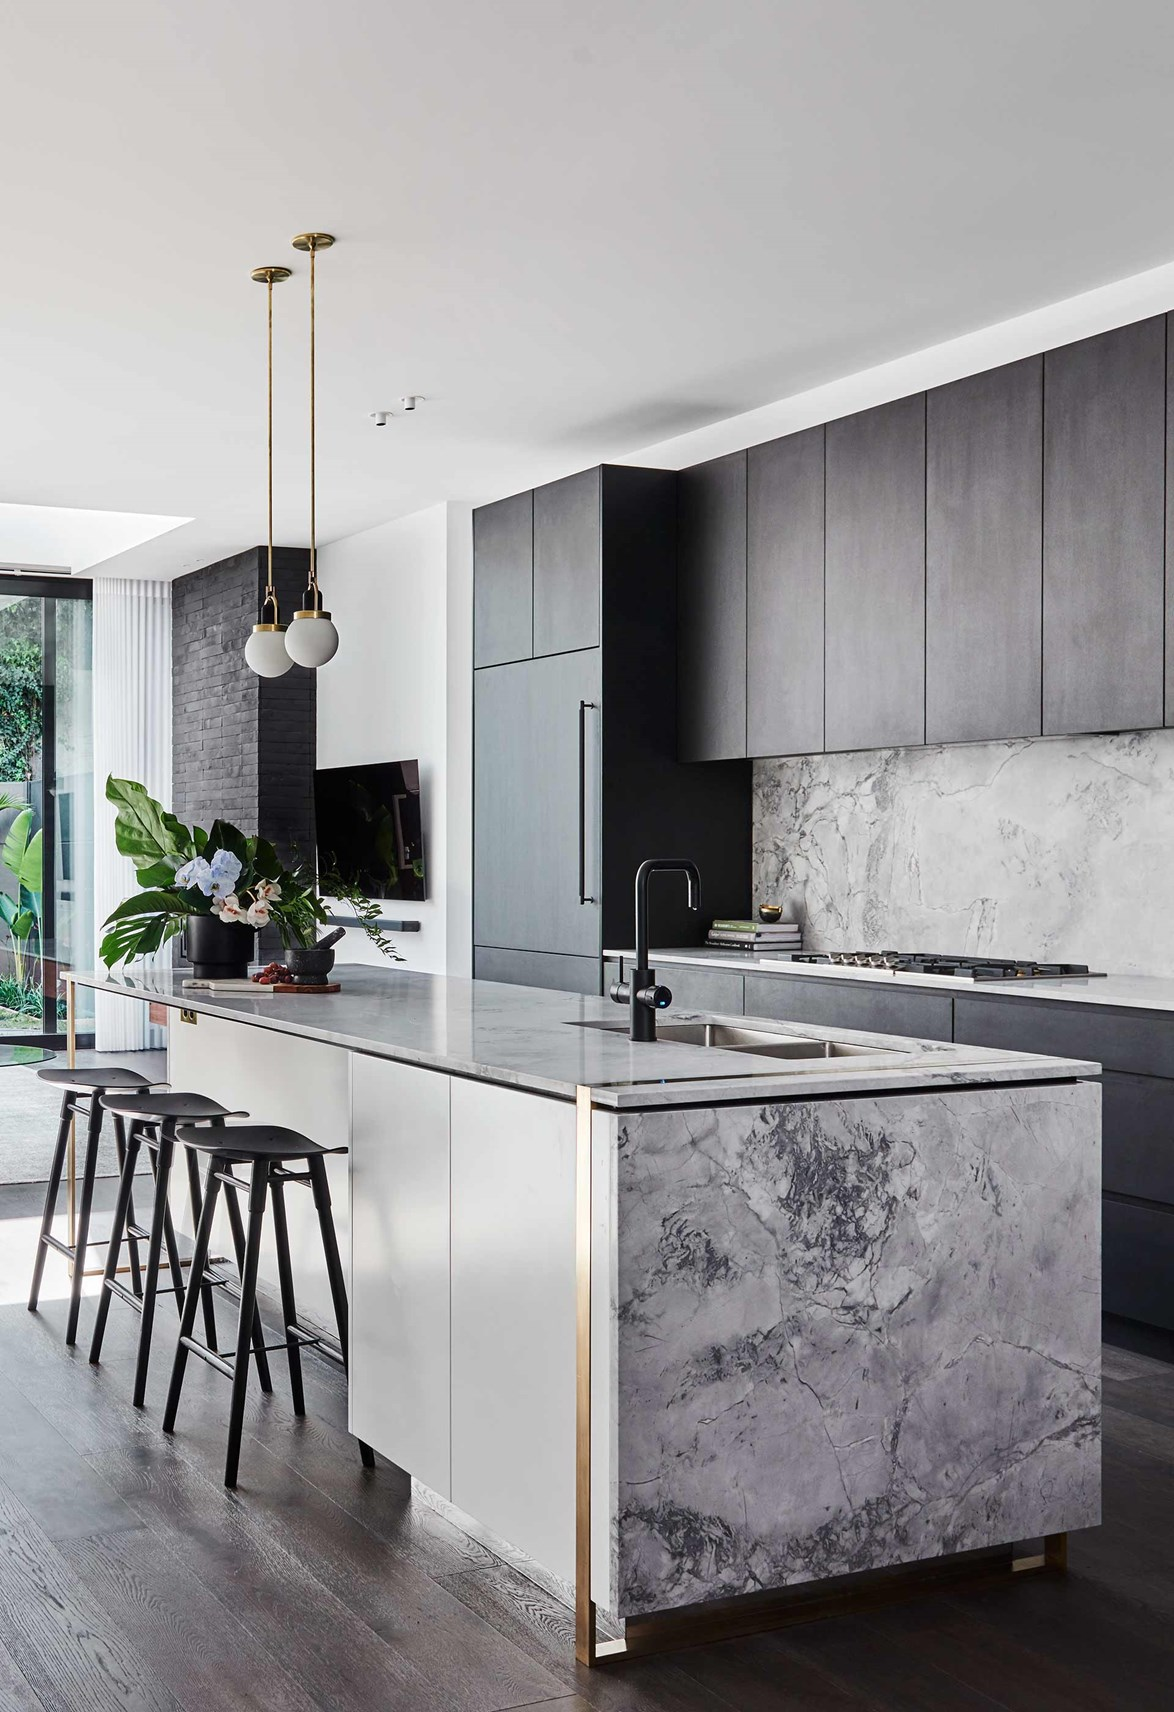 """The Block alumni [Alisa and Lysandra's transformation of a heritage home](https://www.homestolove.com.au/the-block-alisa-lysandra-albert-park-renovation-19416